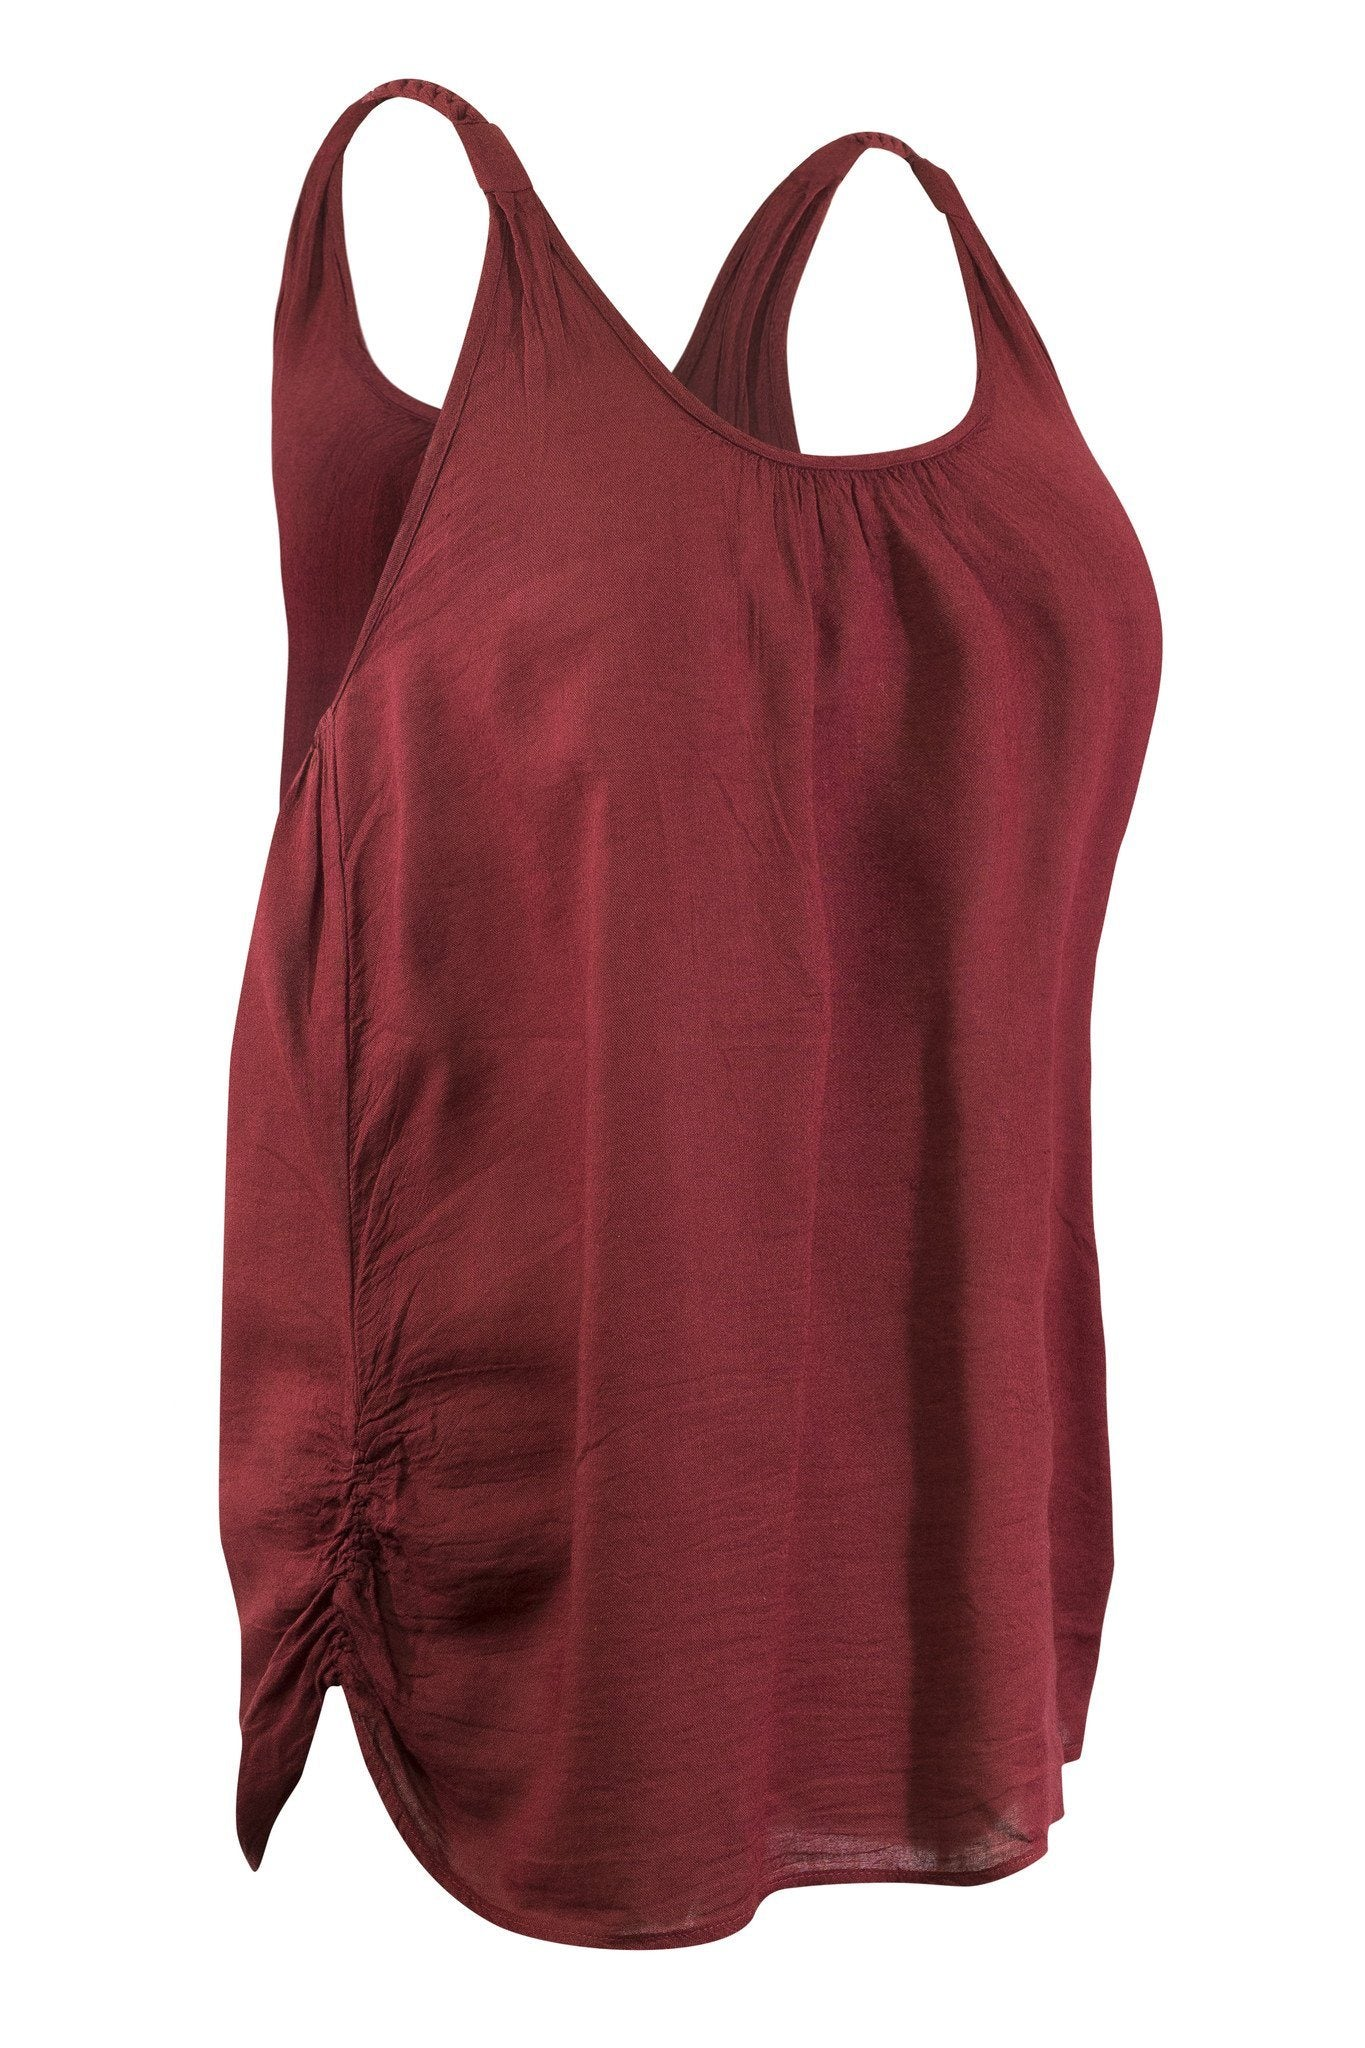 Cotton Tank Top Camisole - CCCollections